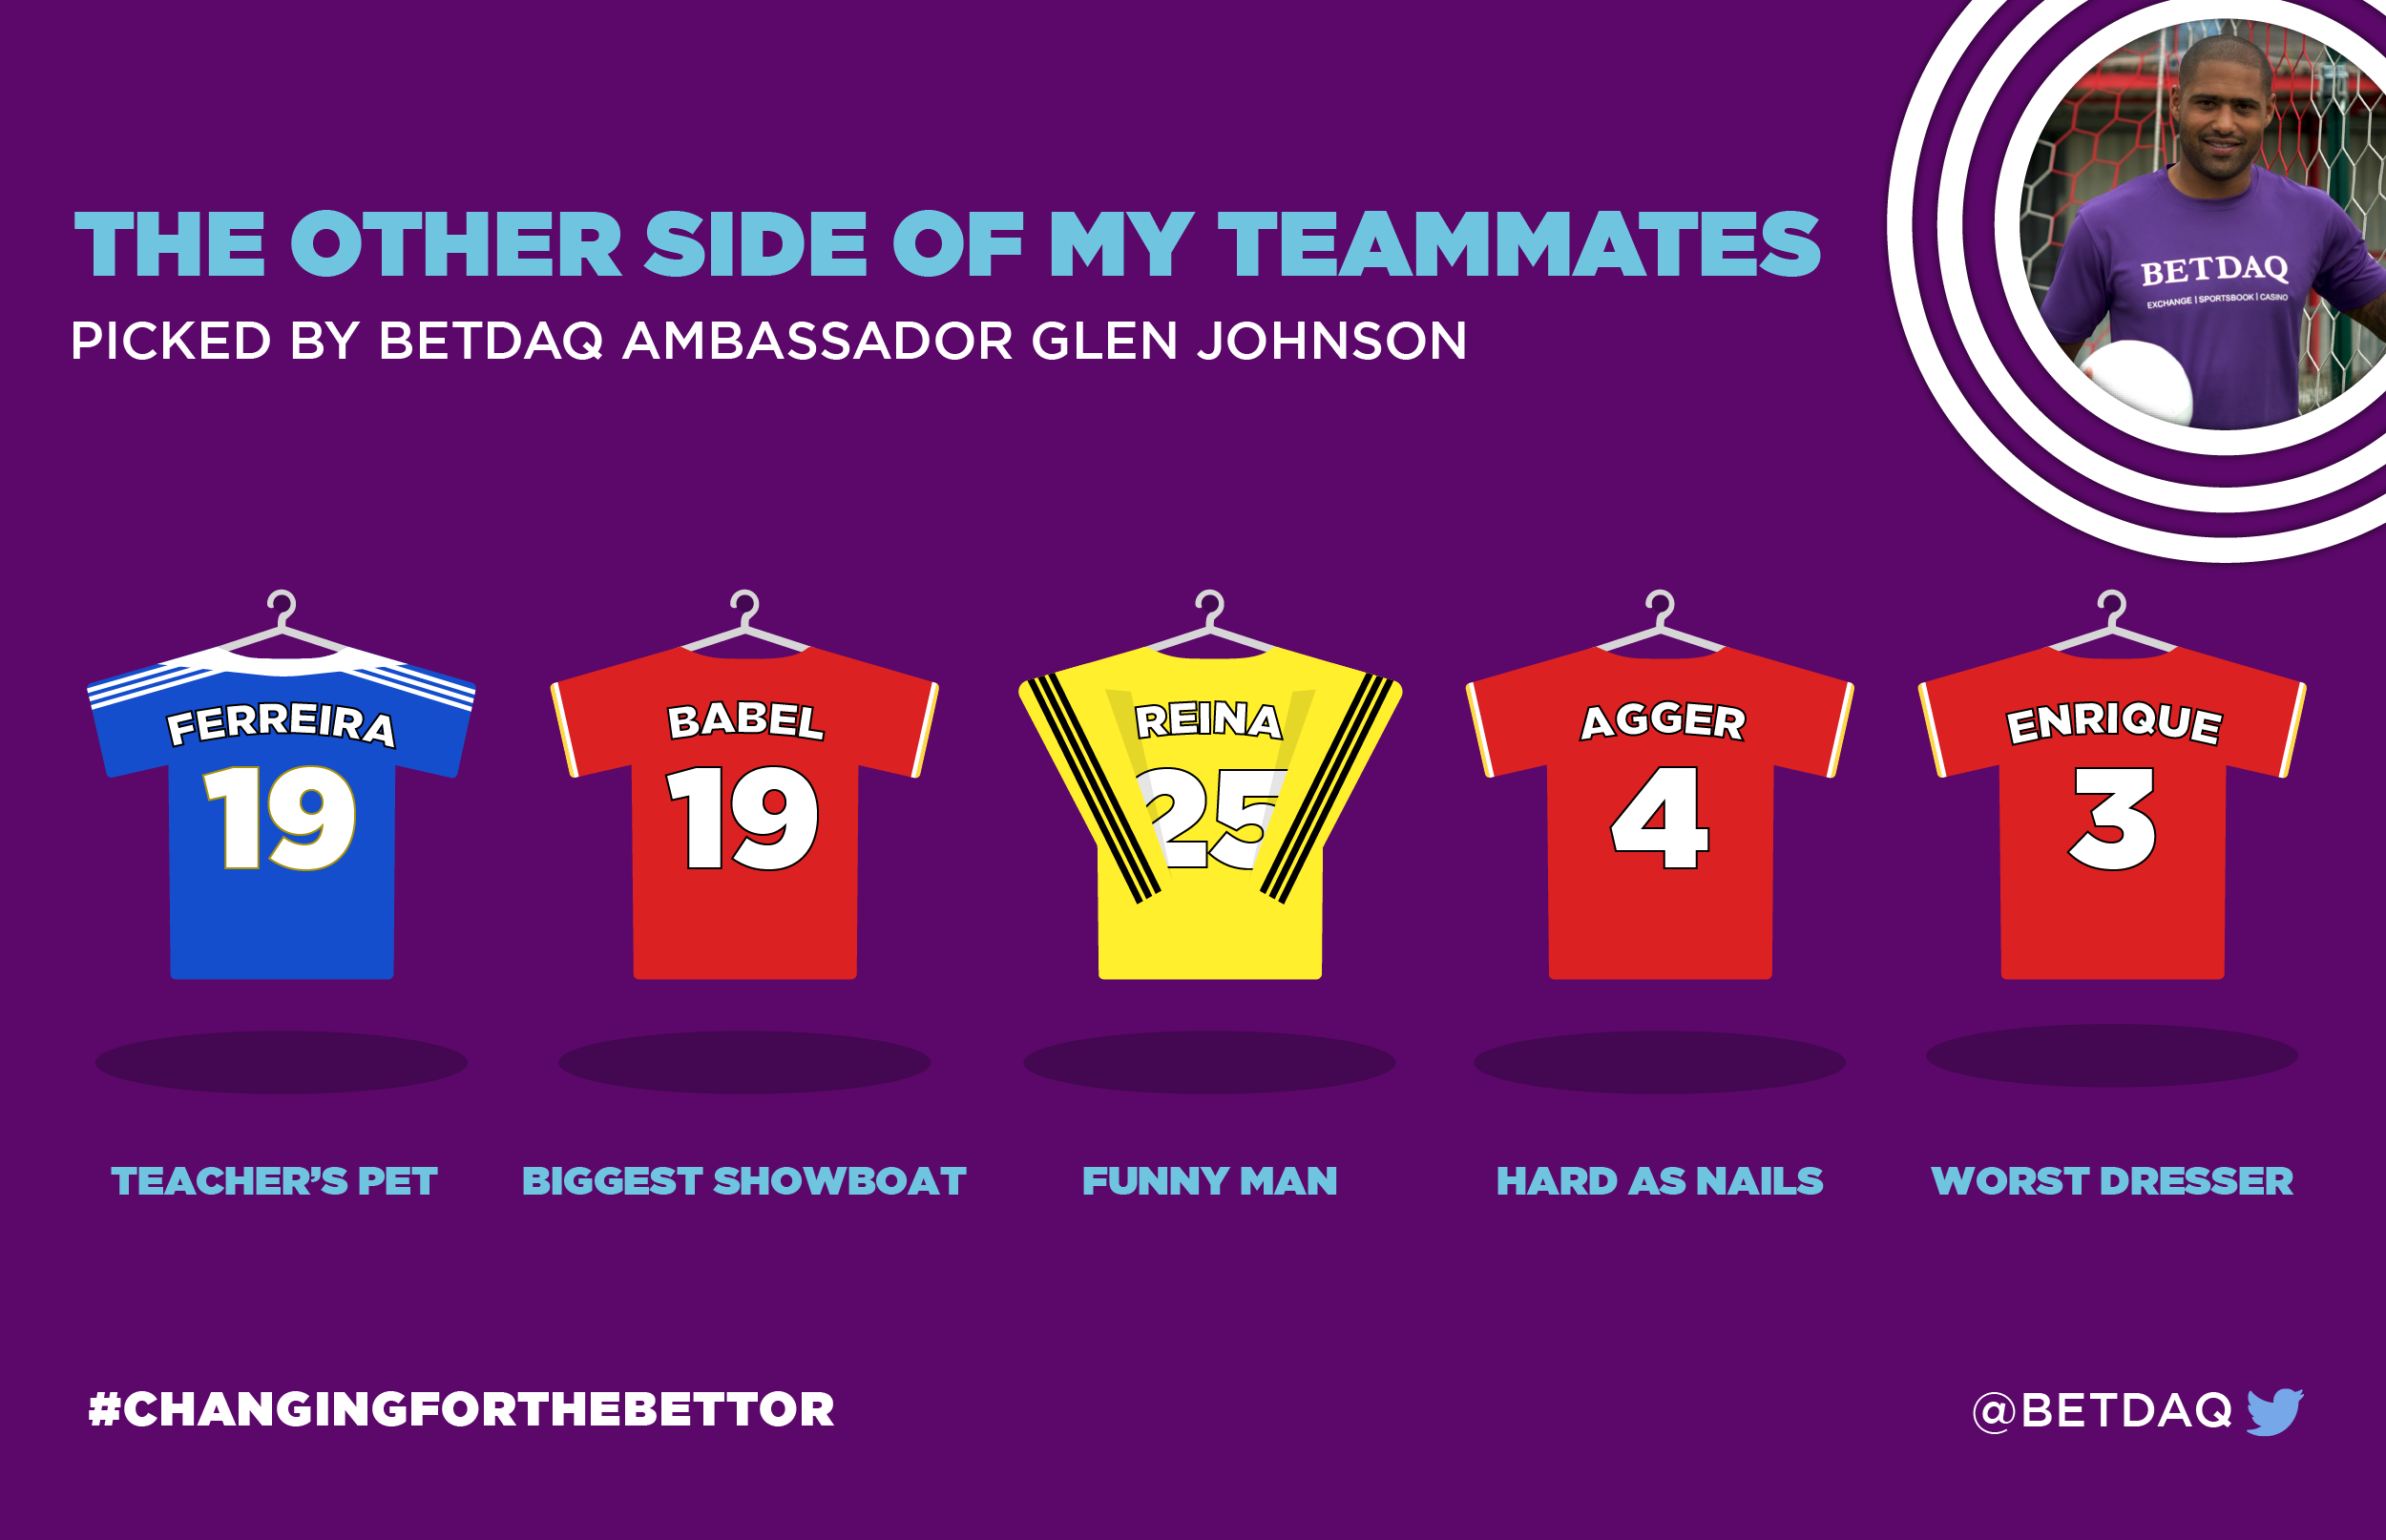 glen johnson teammates